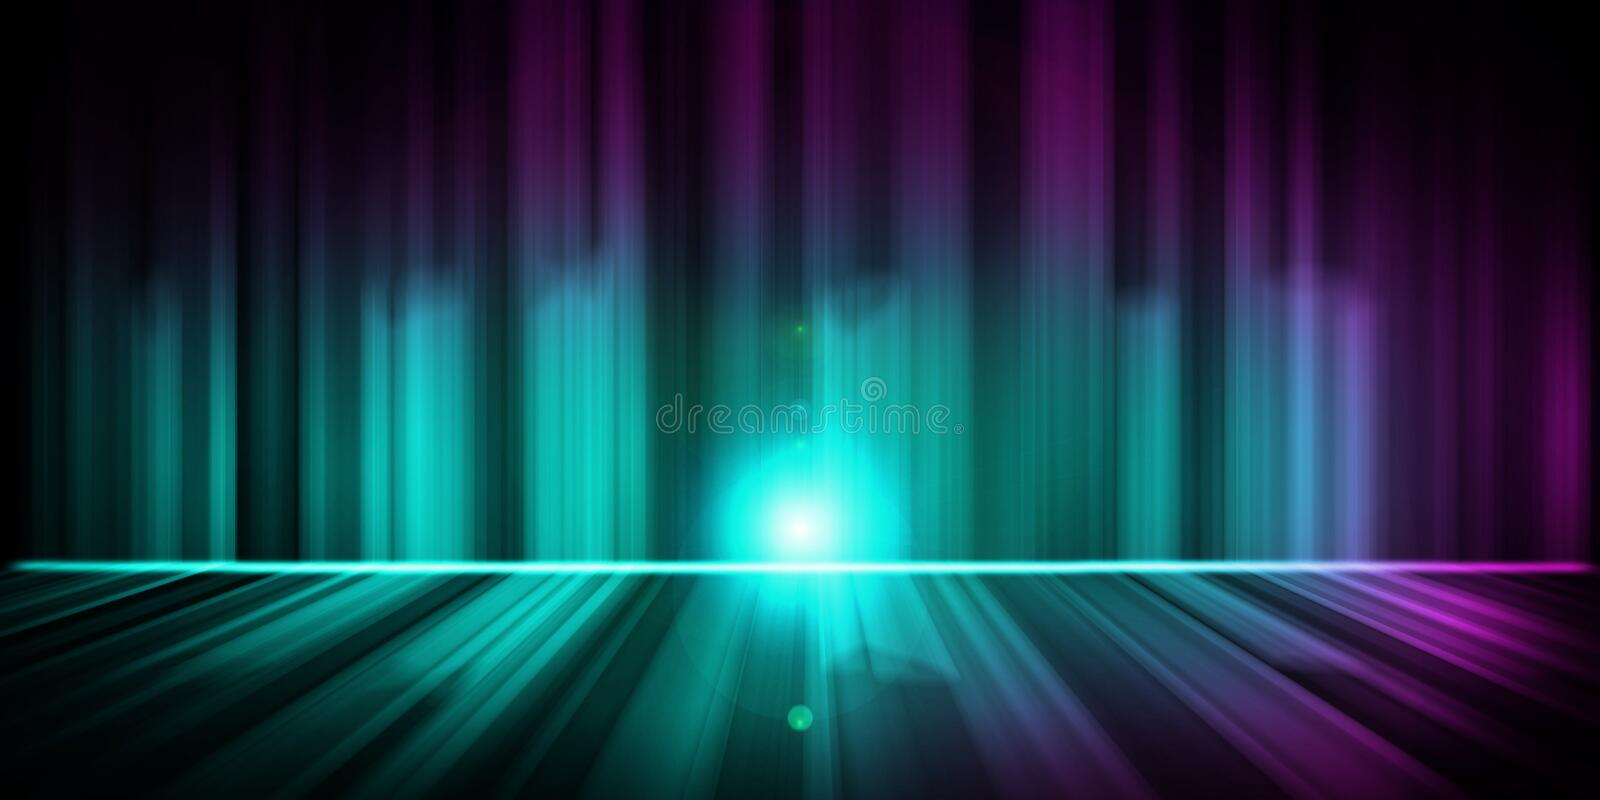 Aurora Wallpaper Royalty Free Stock Images